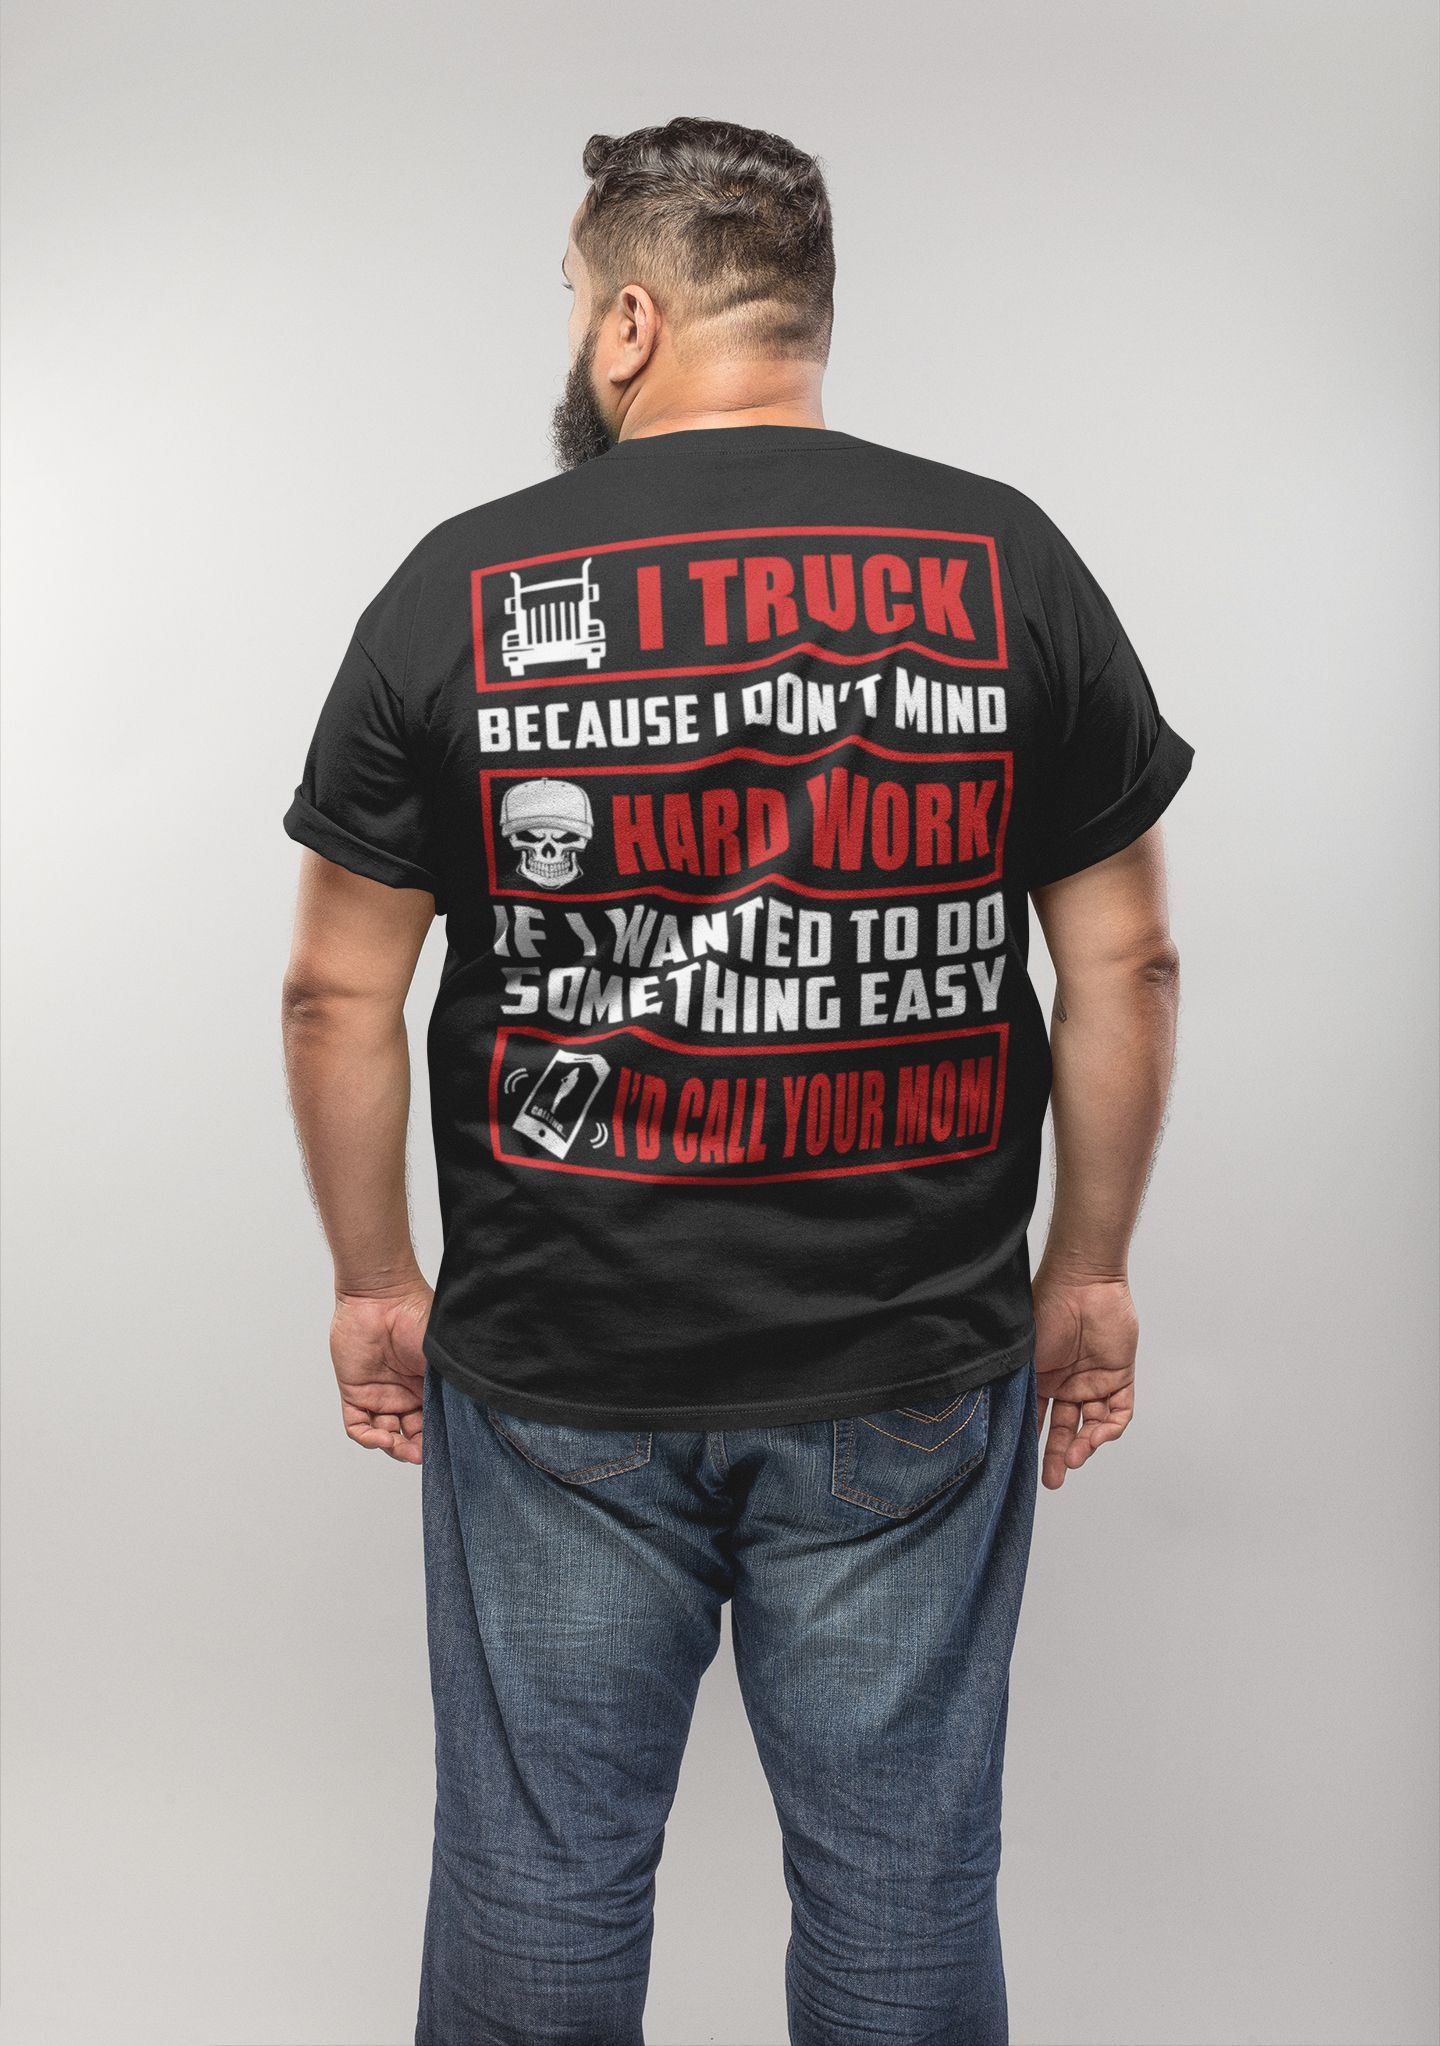 ffd28b68 Trucker Shirt - Truck Driver Works Hard - Truck Driver Gift - Design  available on Tee Shirt Hoodie Tank Mug Sticker Long Sleeve .